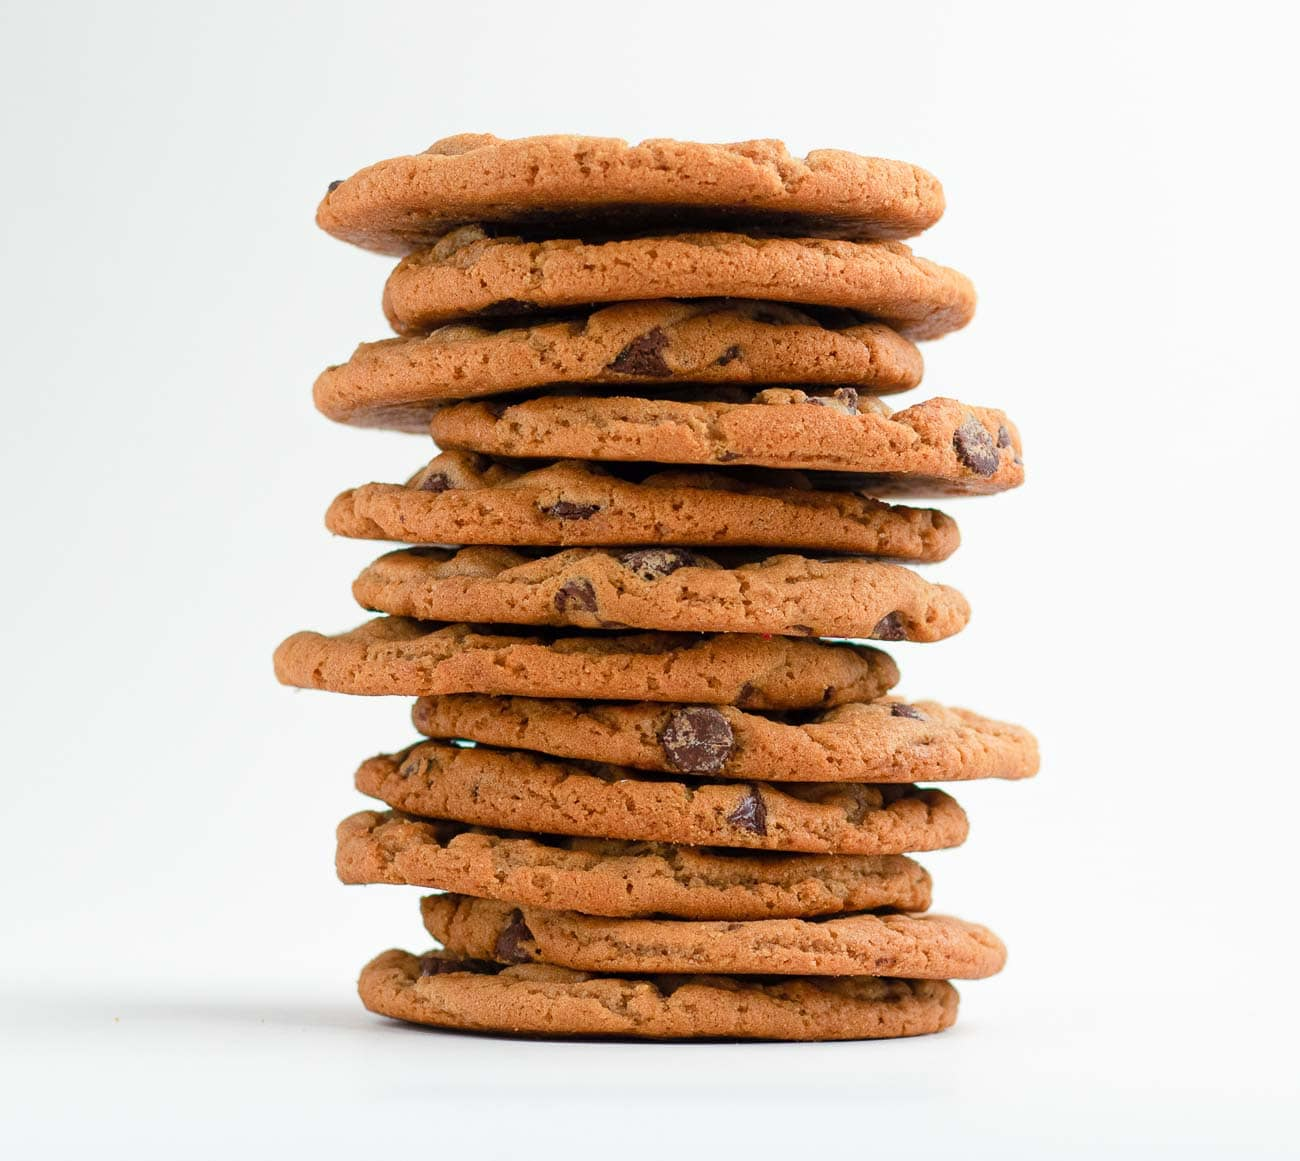 Picture of a dozen of Original Chocolate chip cookie stacked